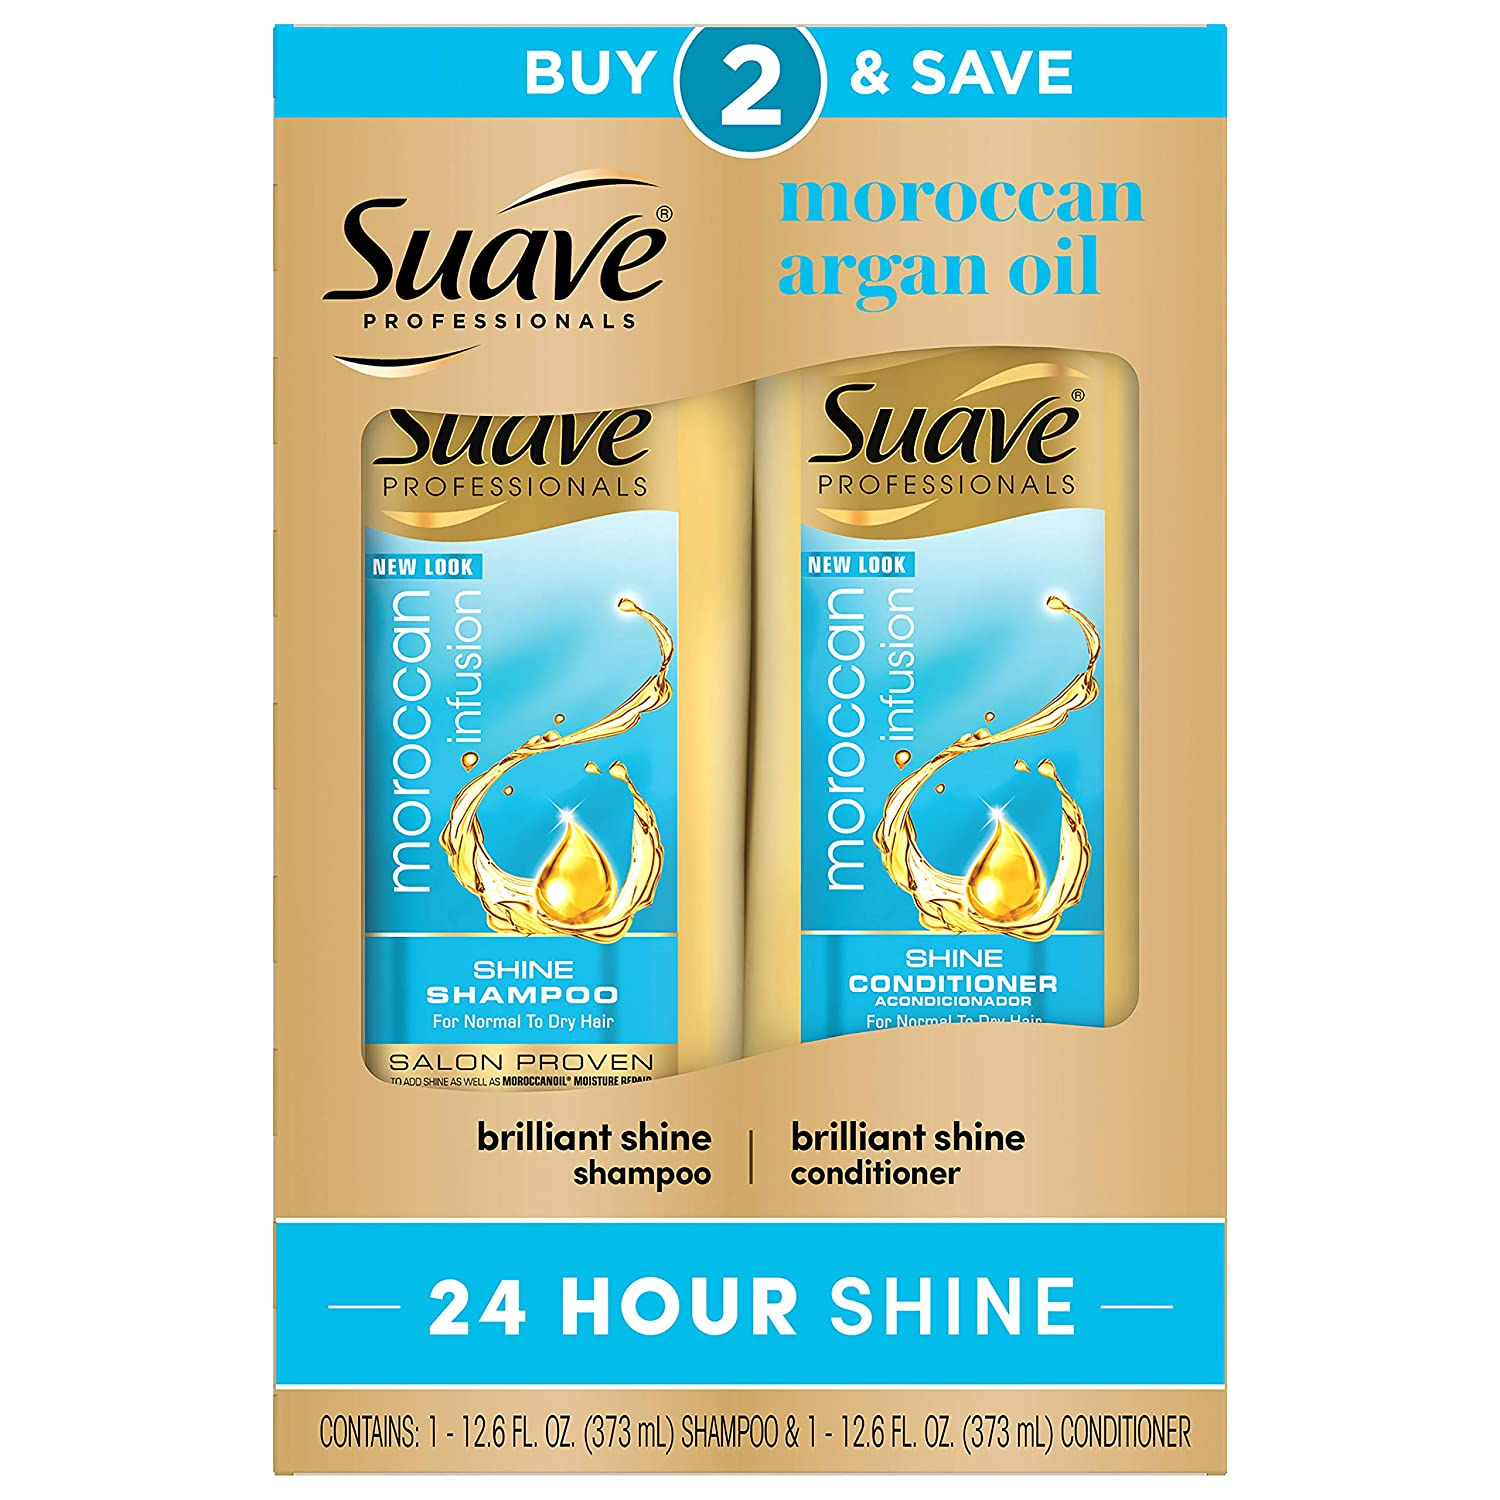 Suave Shine Shampoo and Conditioner Moroccan Infusion with Argan Oil 12.6 oz, pack of 6